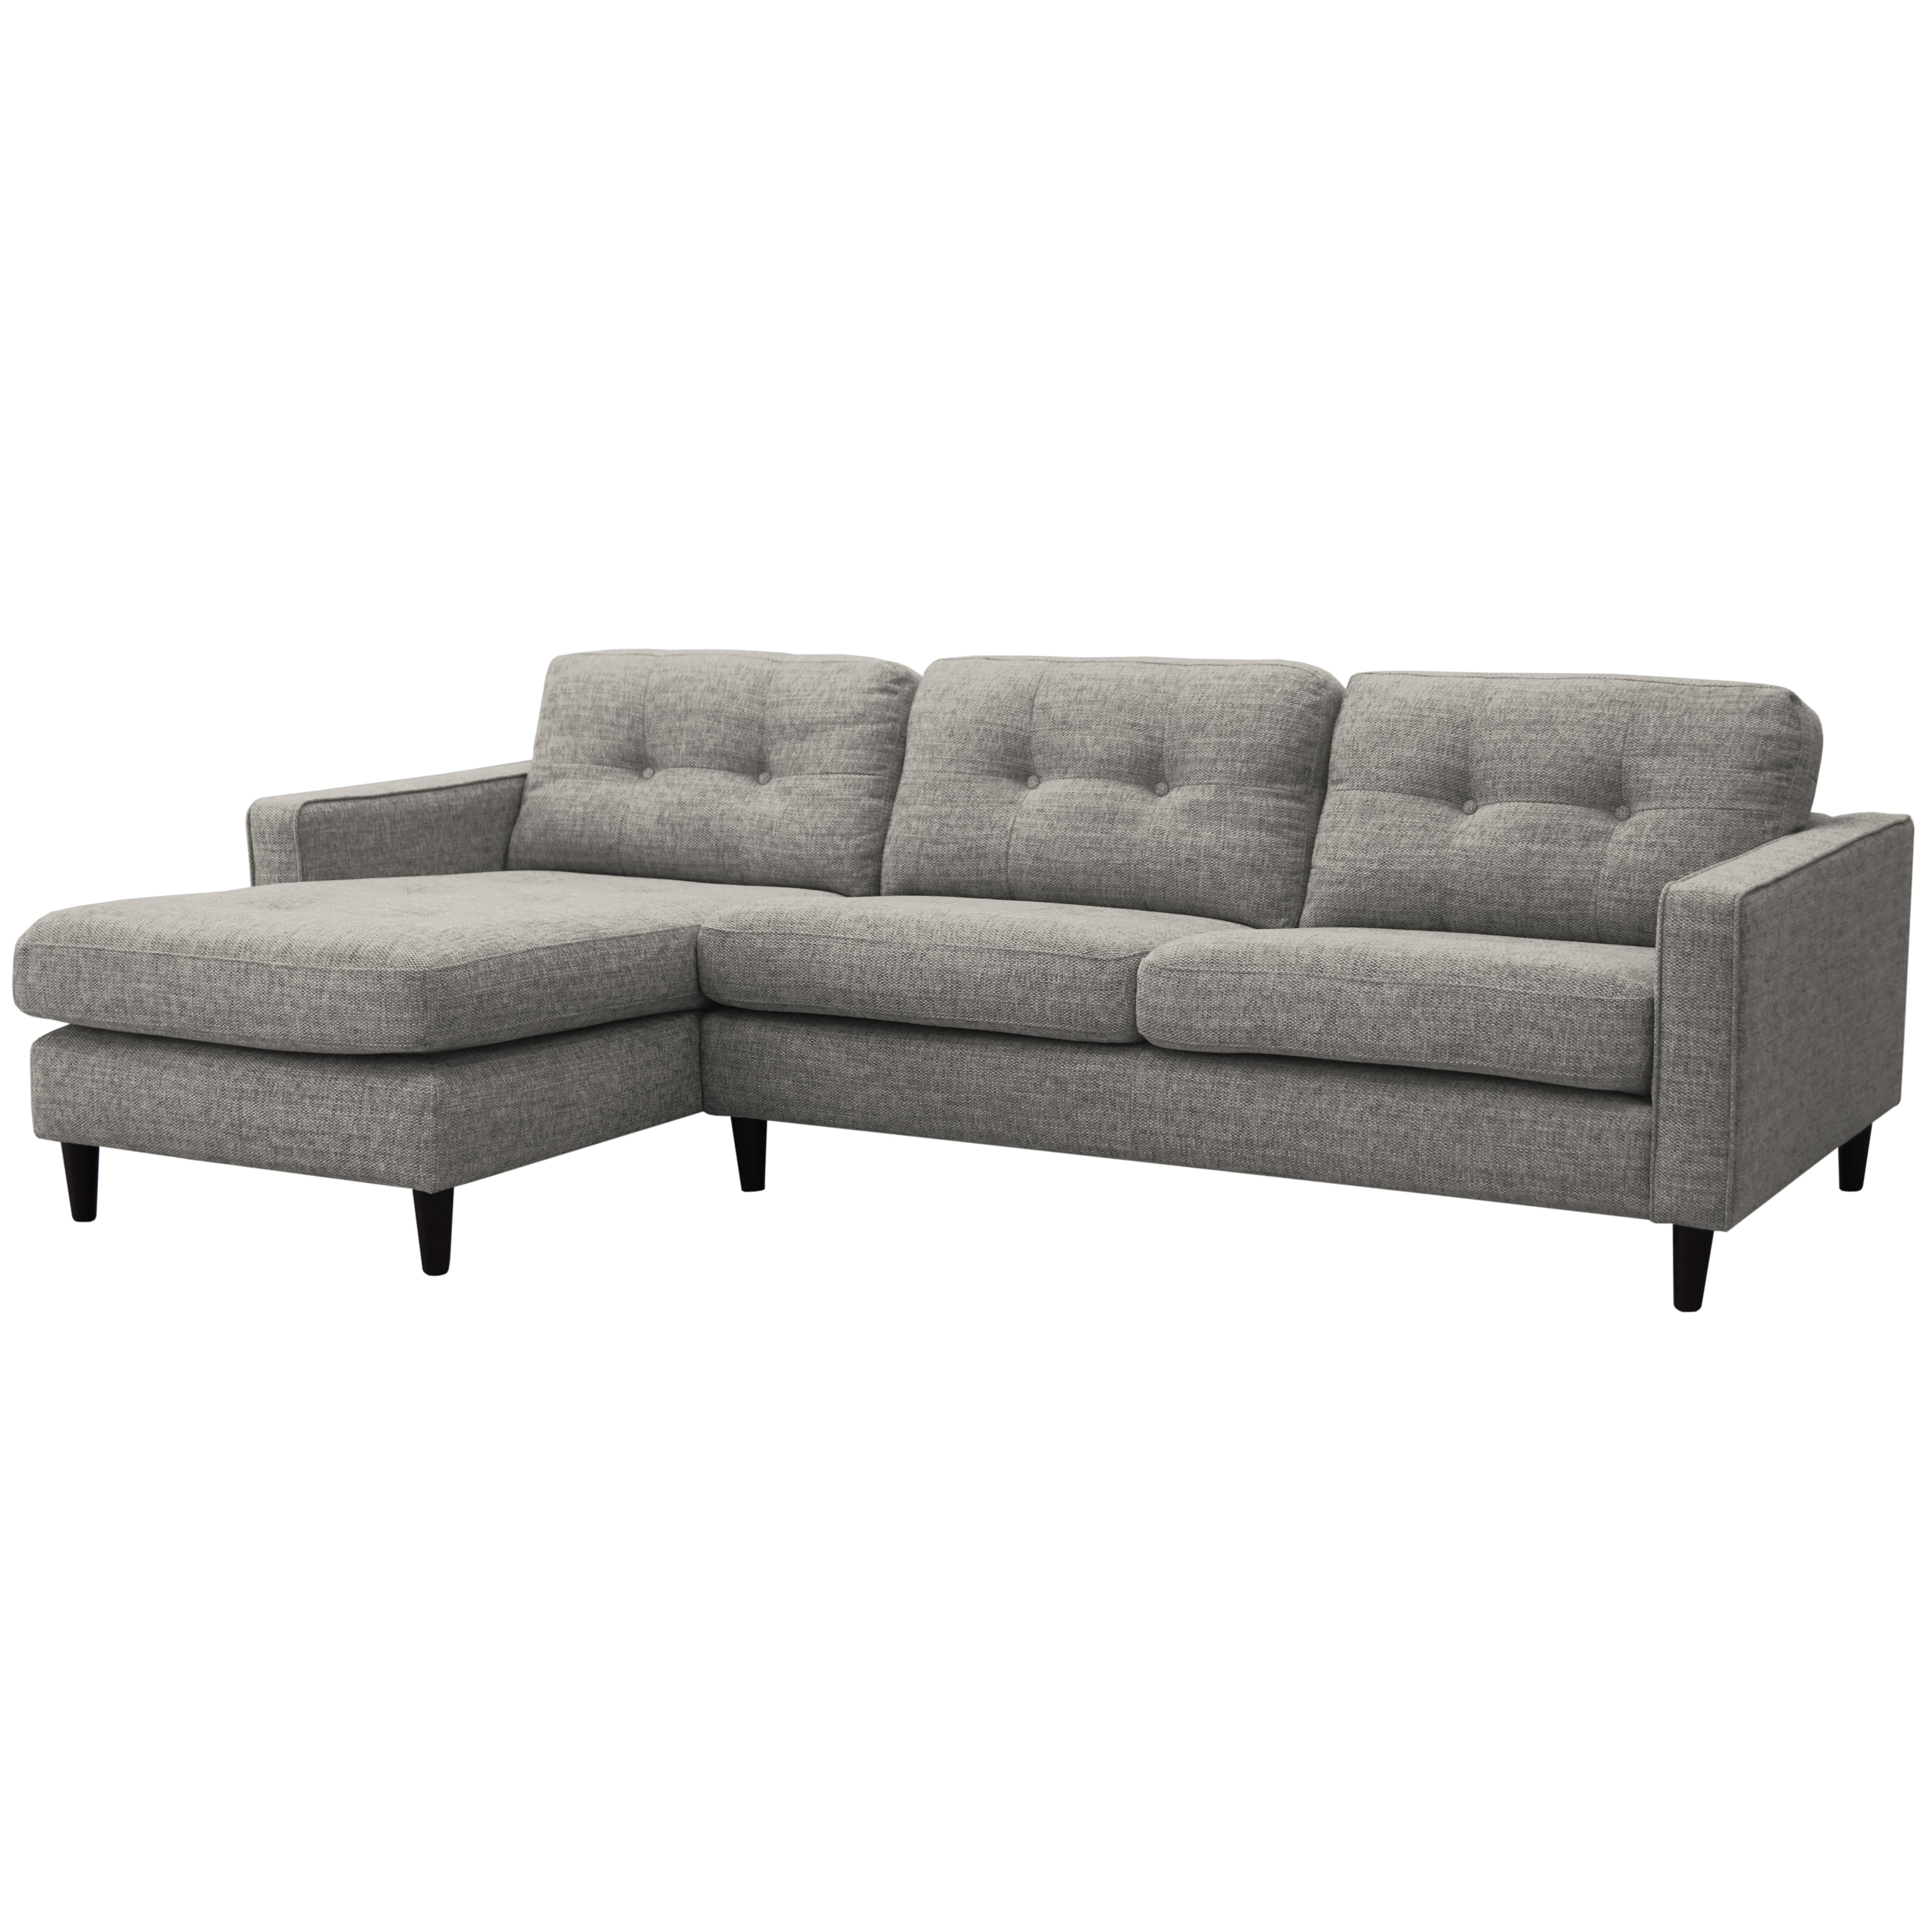 Bergen left hand facing four seater chaise sofa callida grey